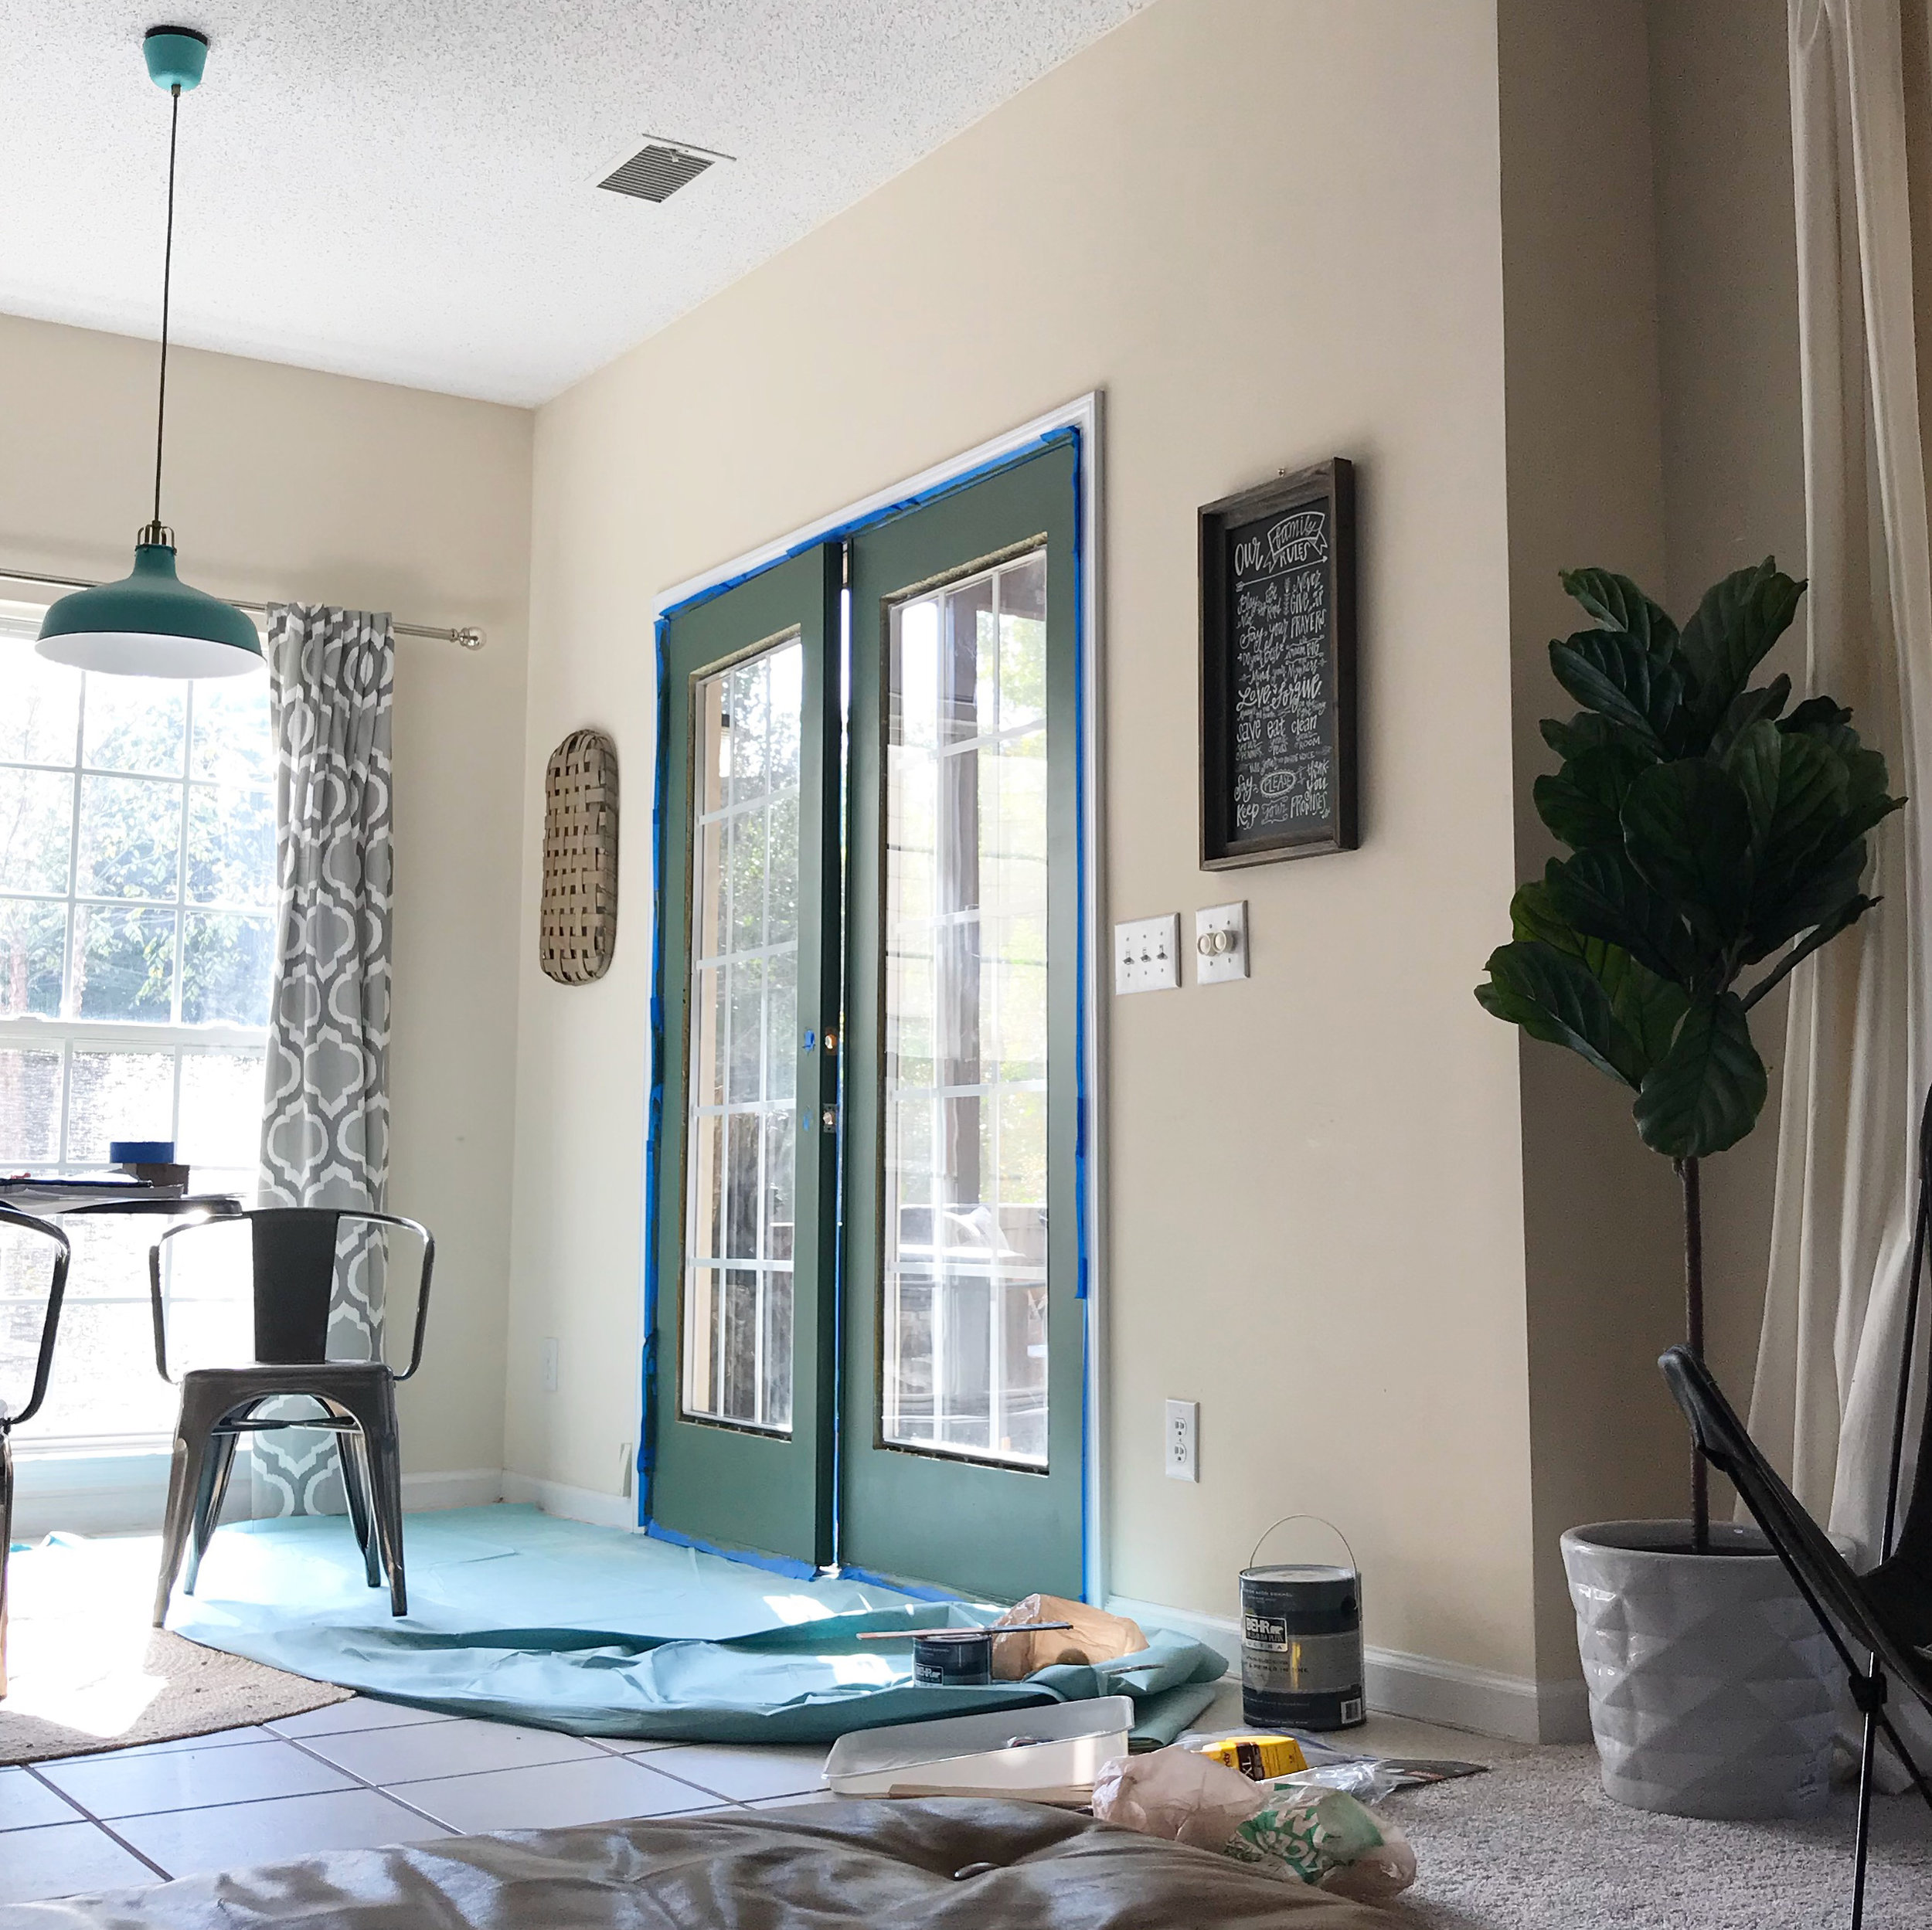 update your french door for under $100, a fraction of the cost of a full door replacement!